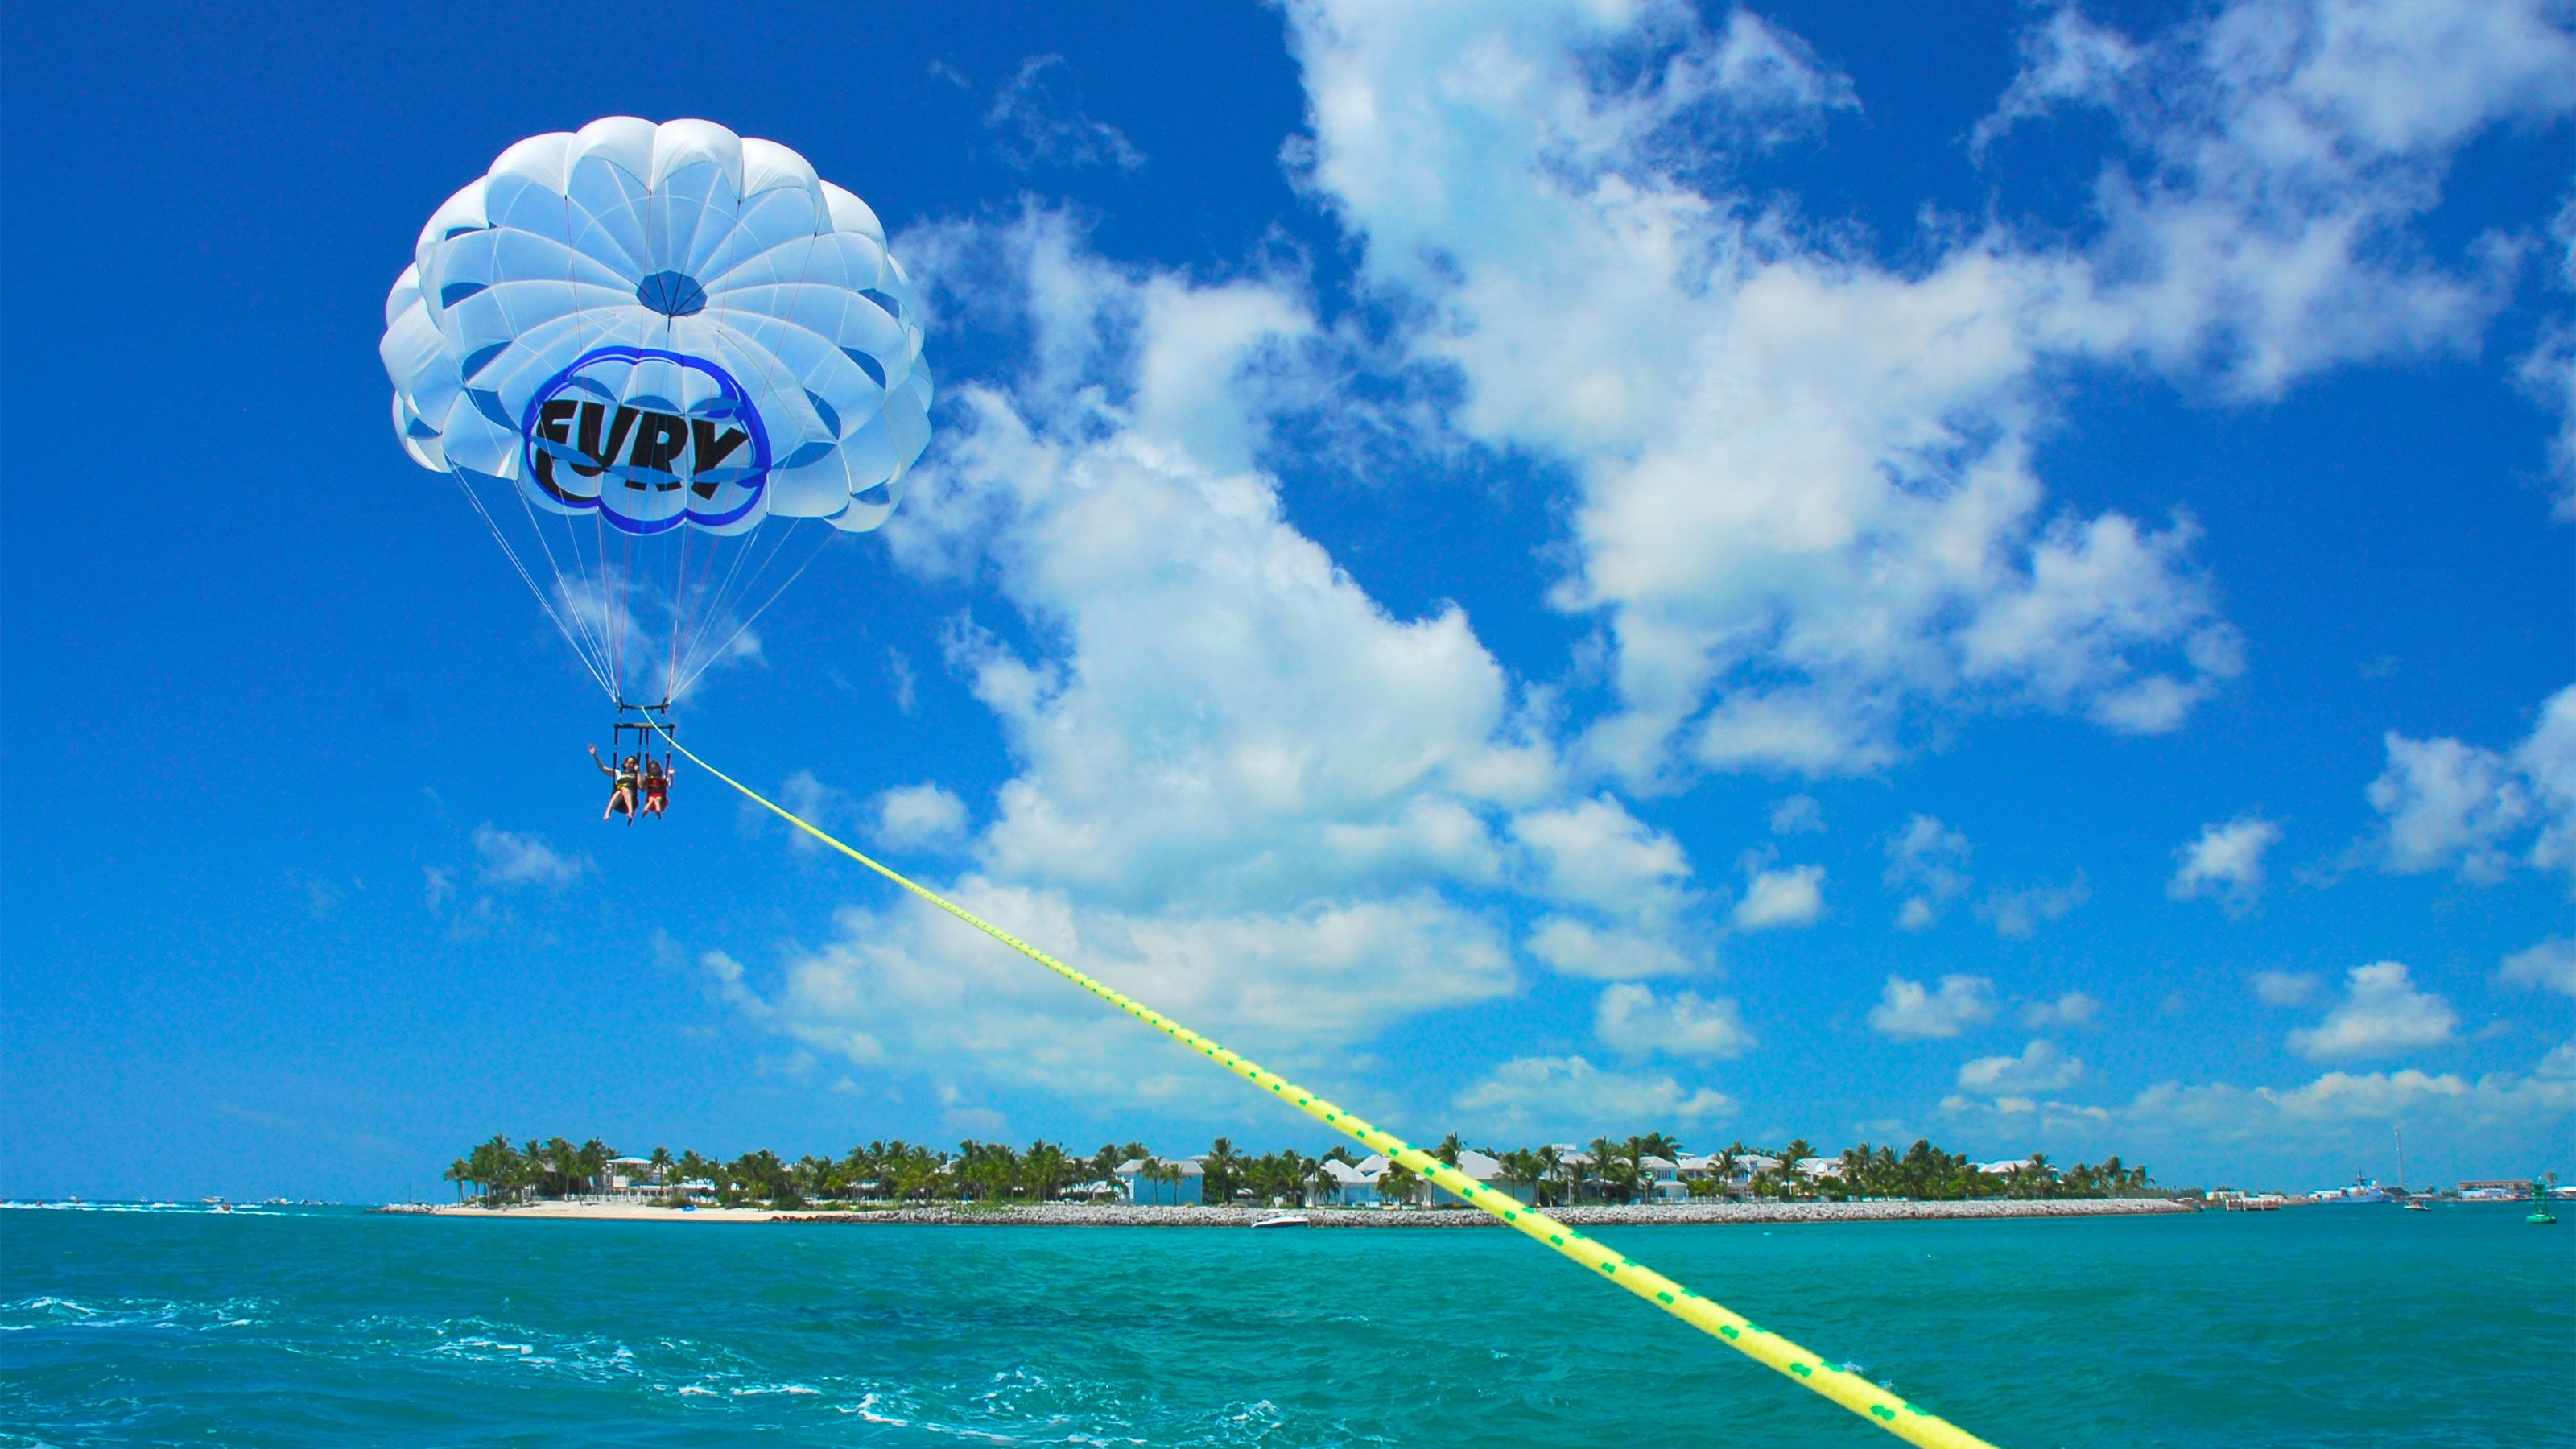 Perfect weather for parasailing in Key West